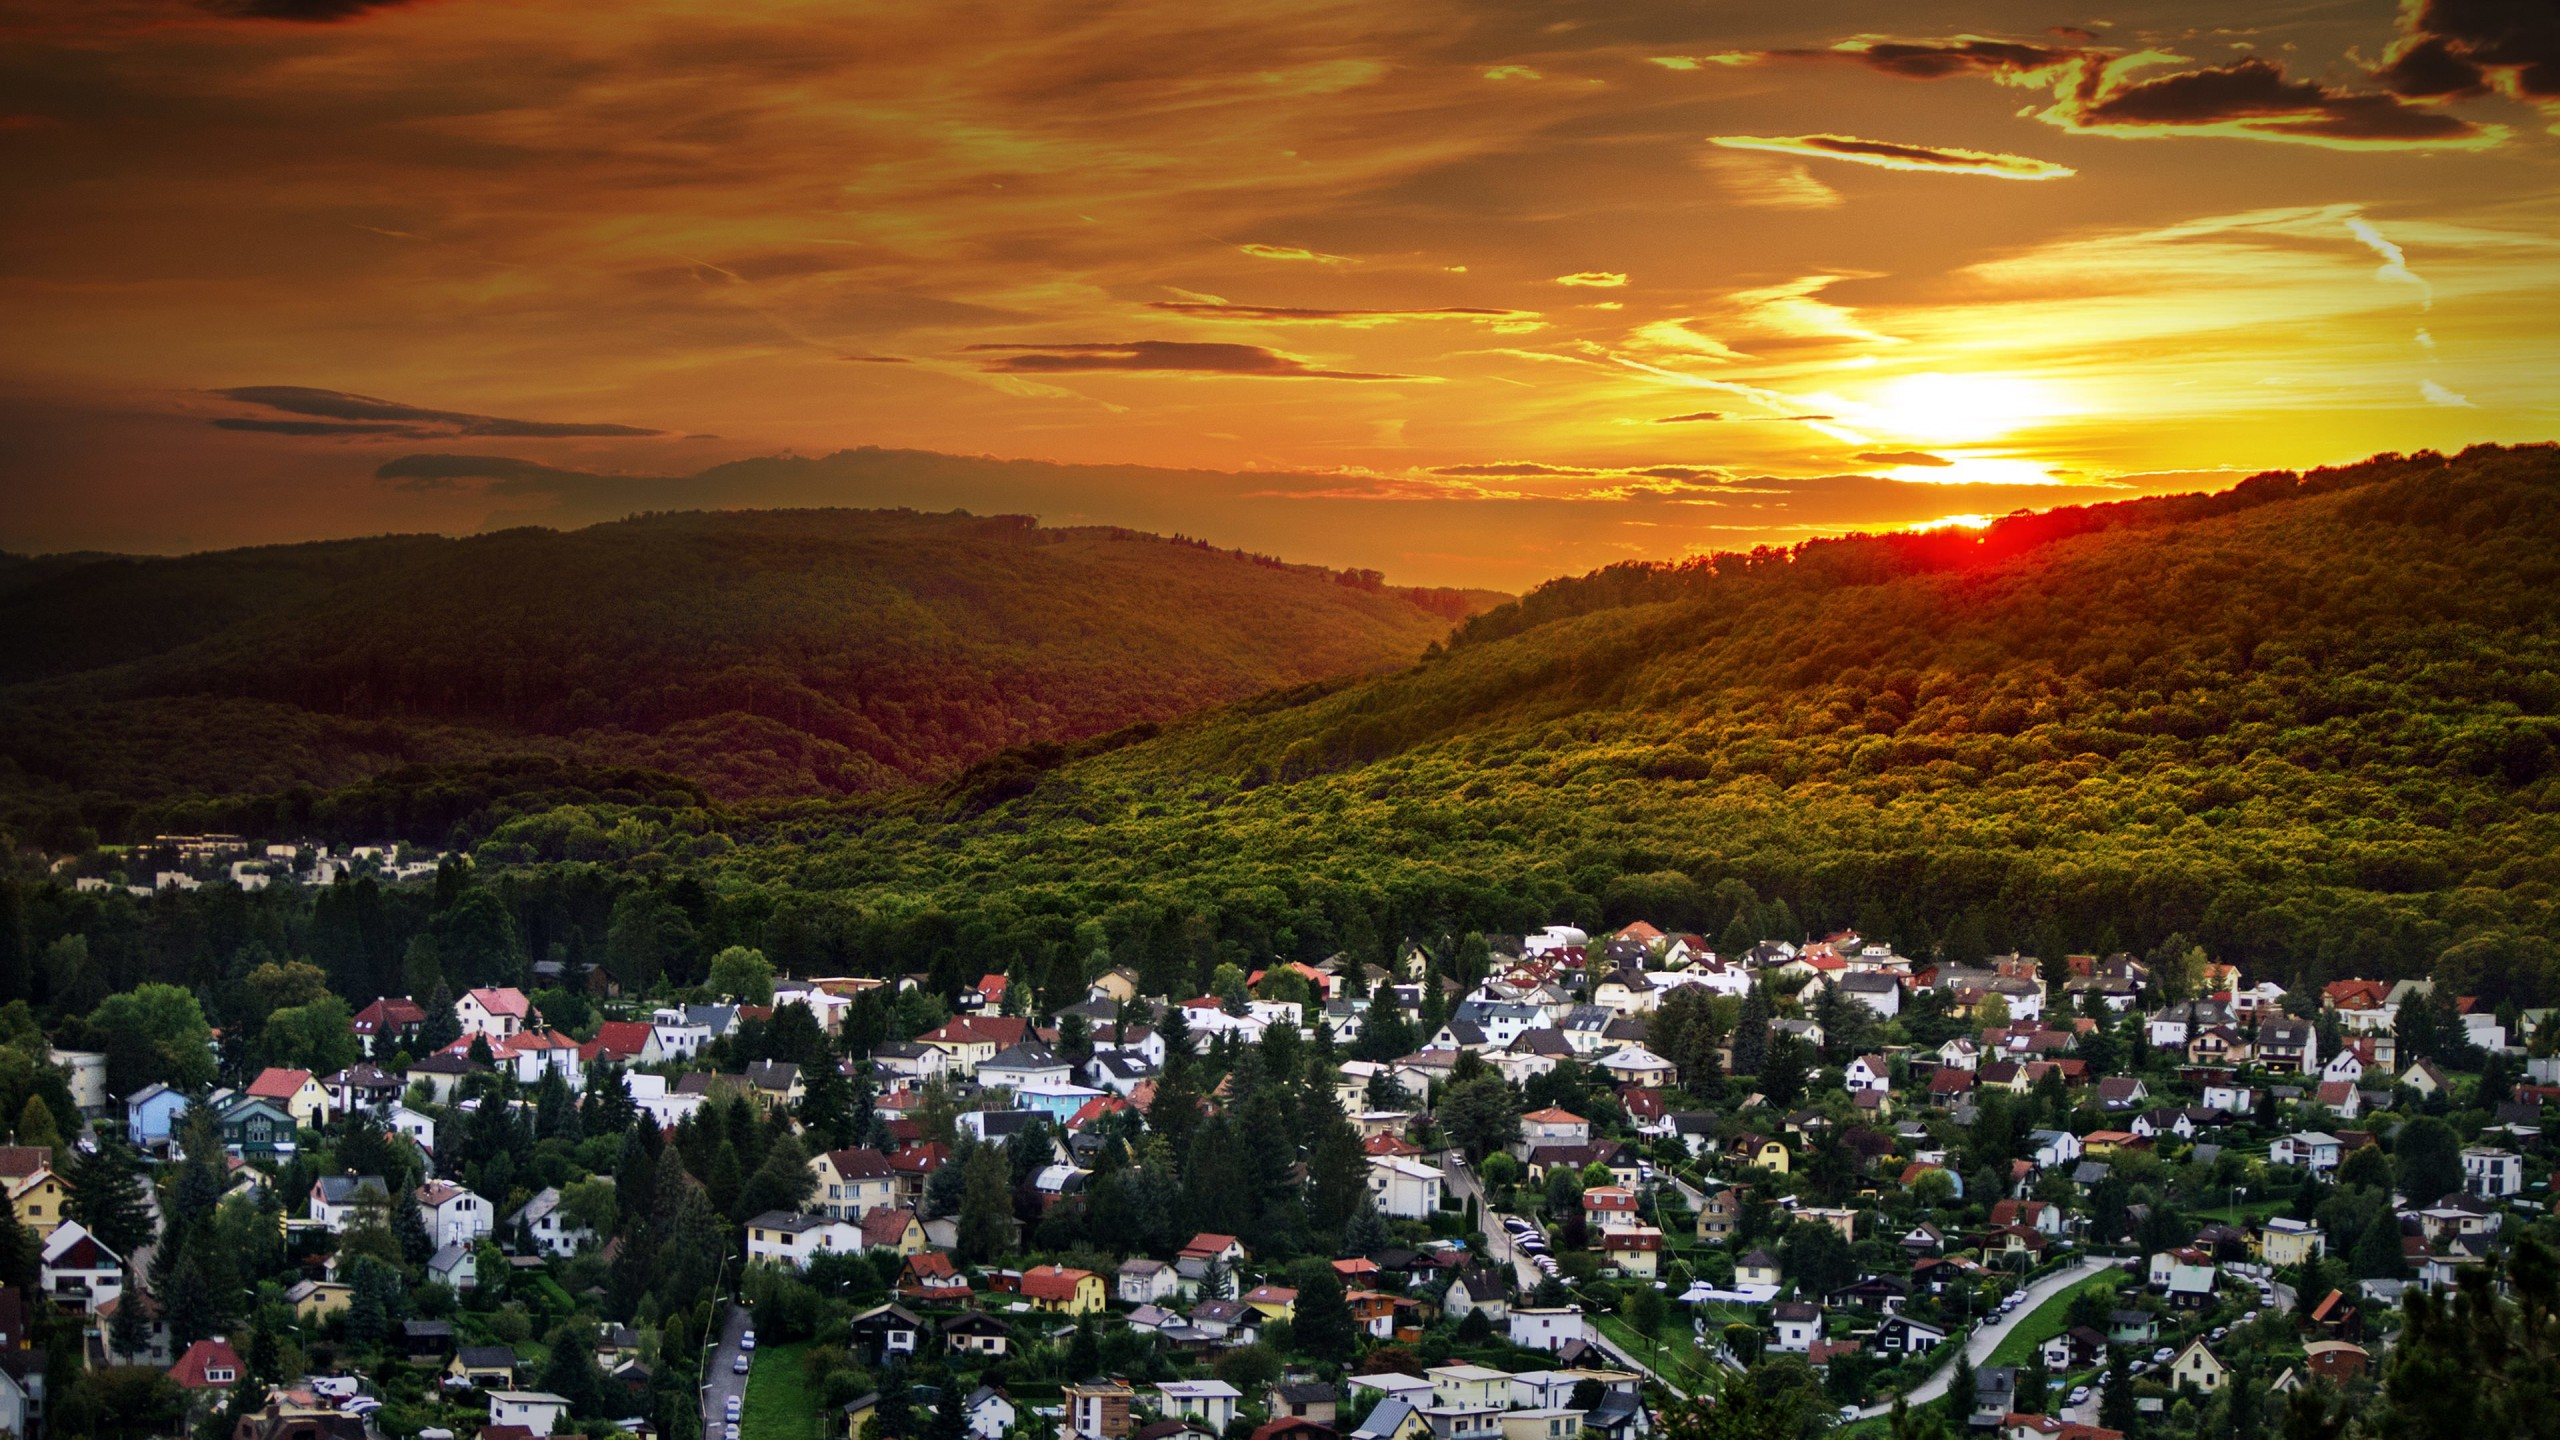 Austrian Sunset Wallpaper for Social Media YouTube Channel Art